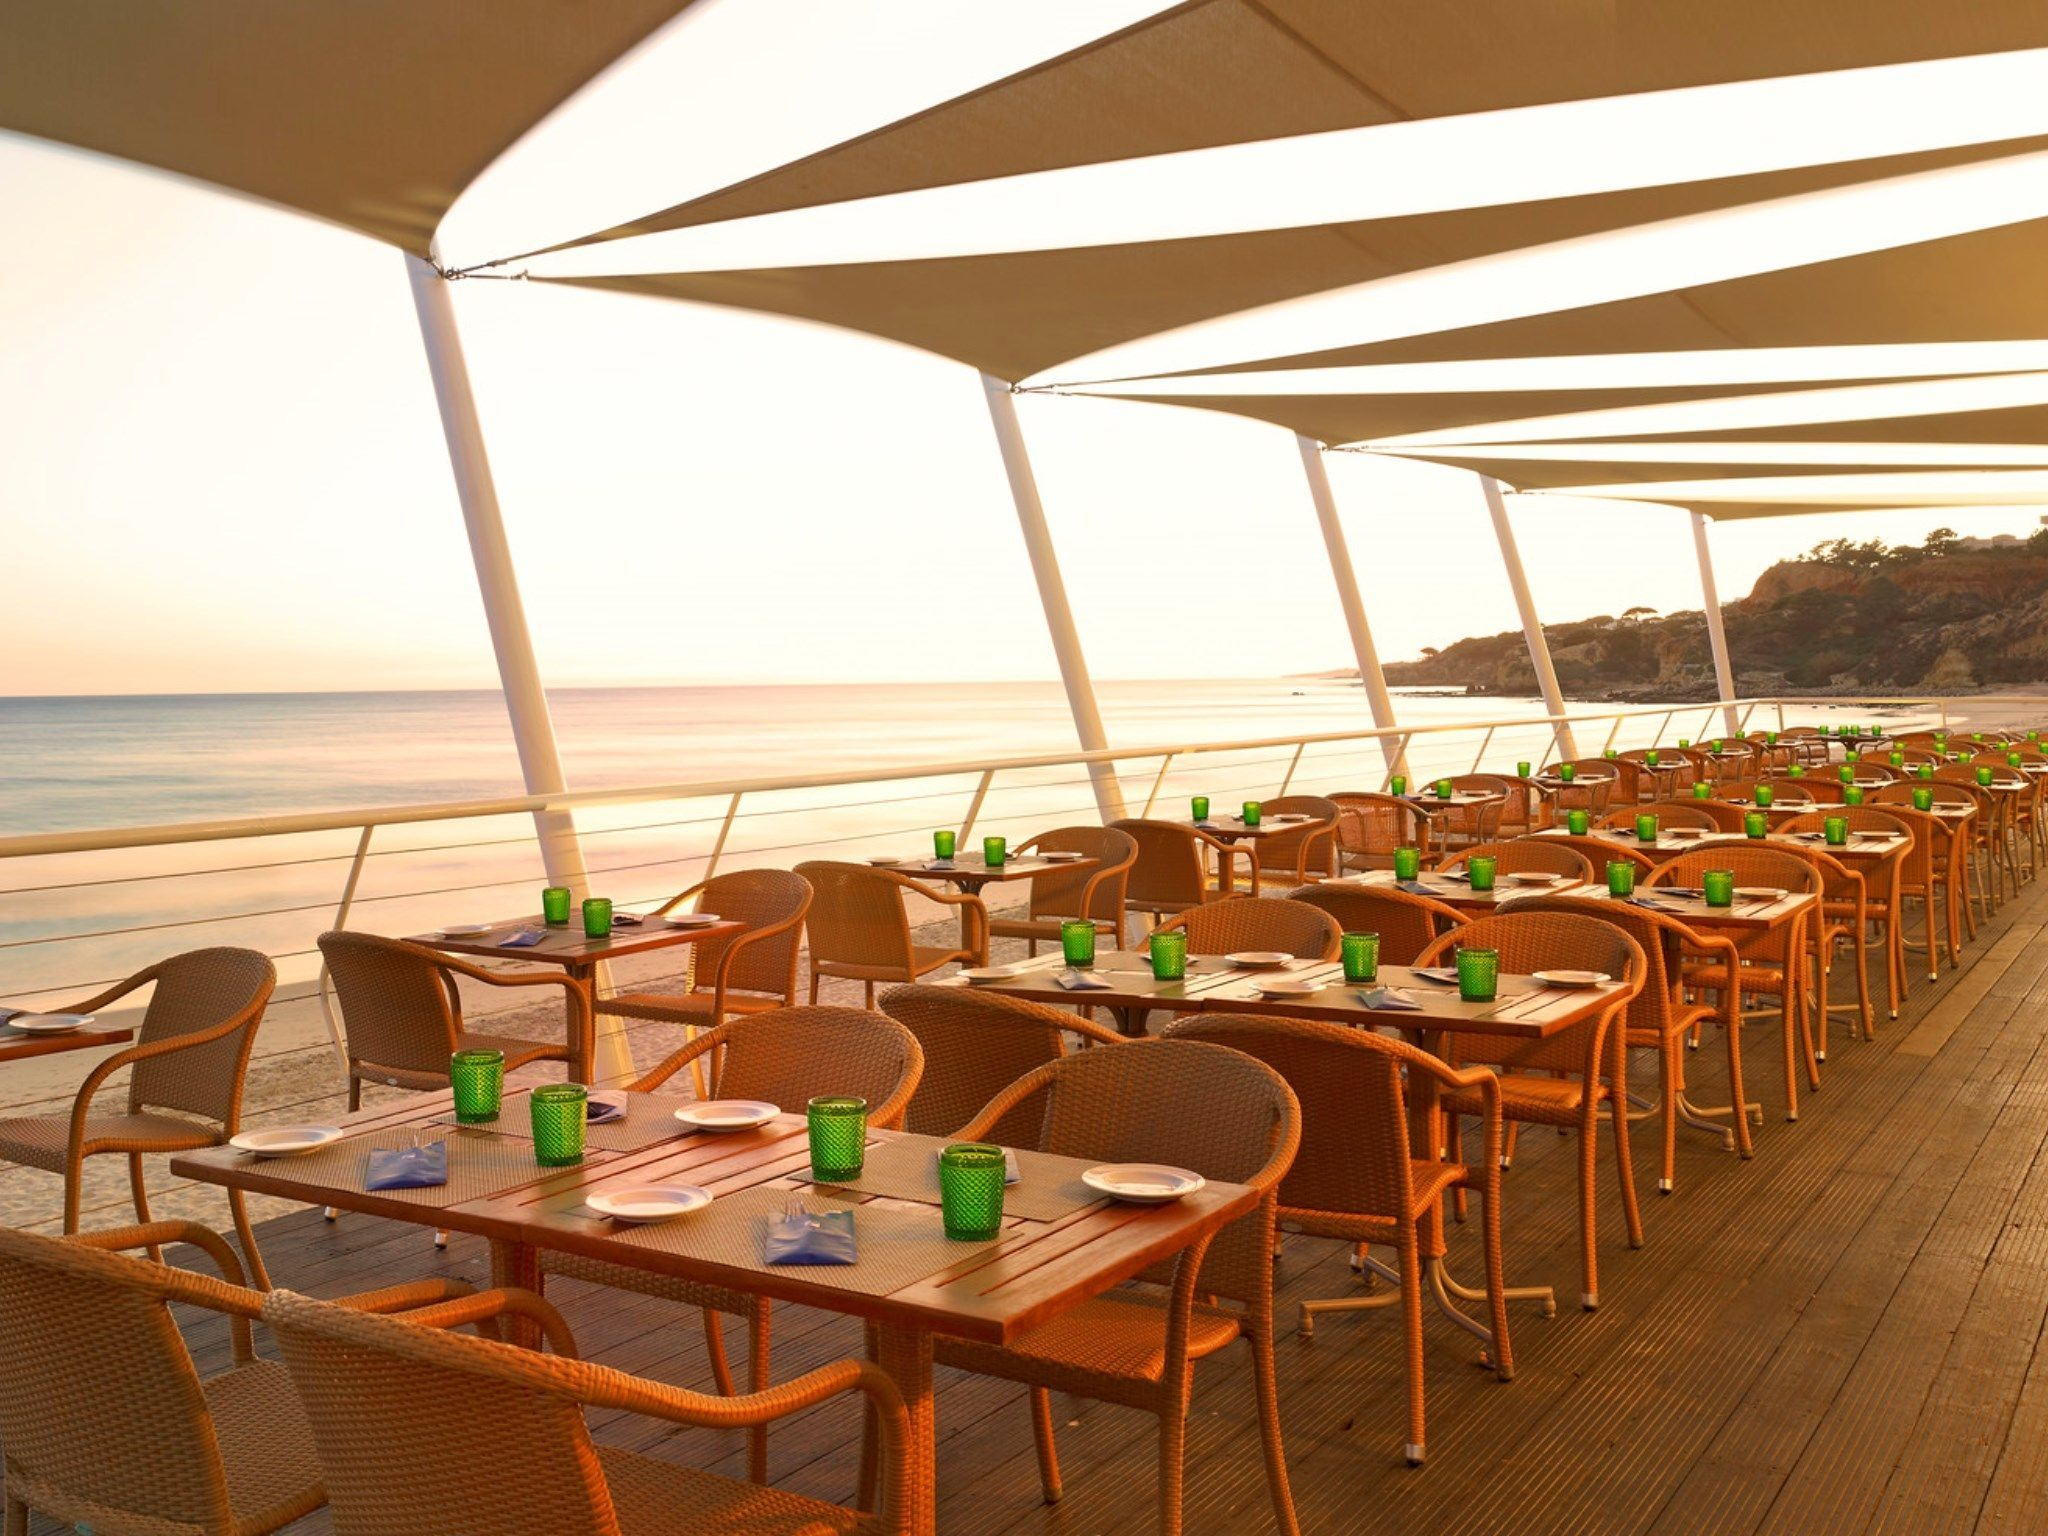 Restaurant Algarve, Beach Club Algarve, Steak House Albufeira